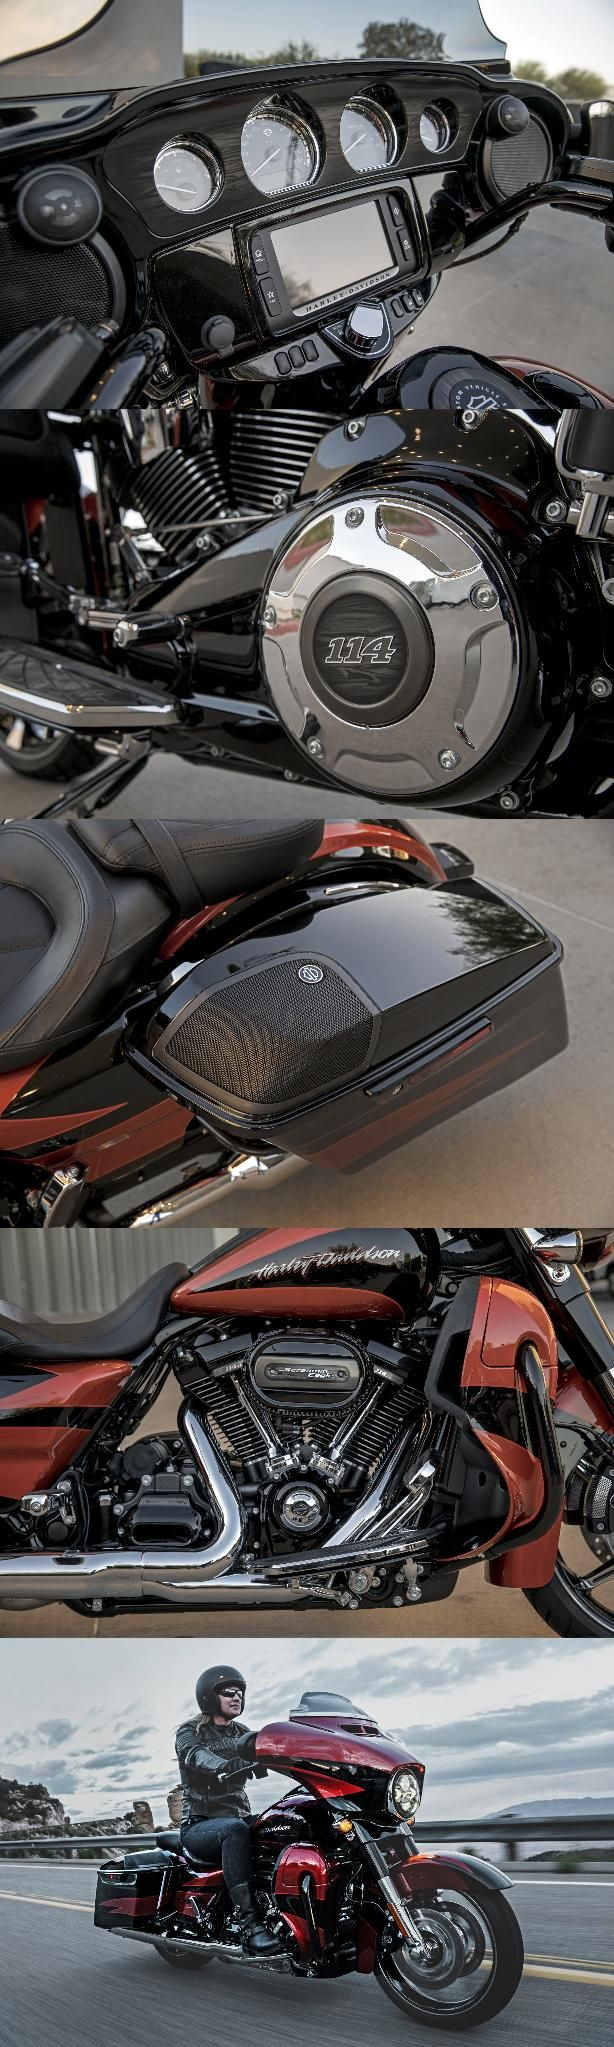 Decked out fender to fender with custom details and our most powerful engine and sound system.   2017 Harley-Davidson CVO Street Glide